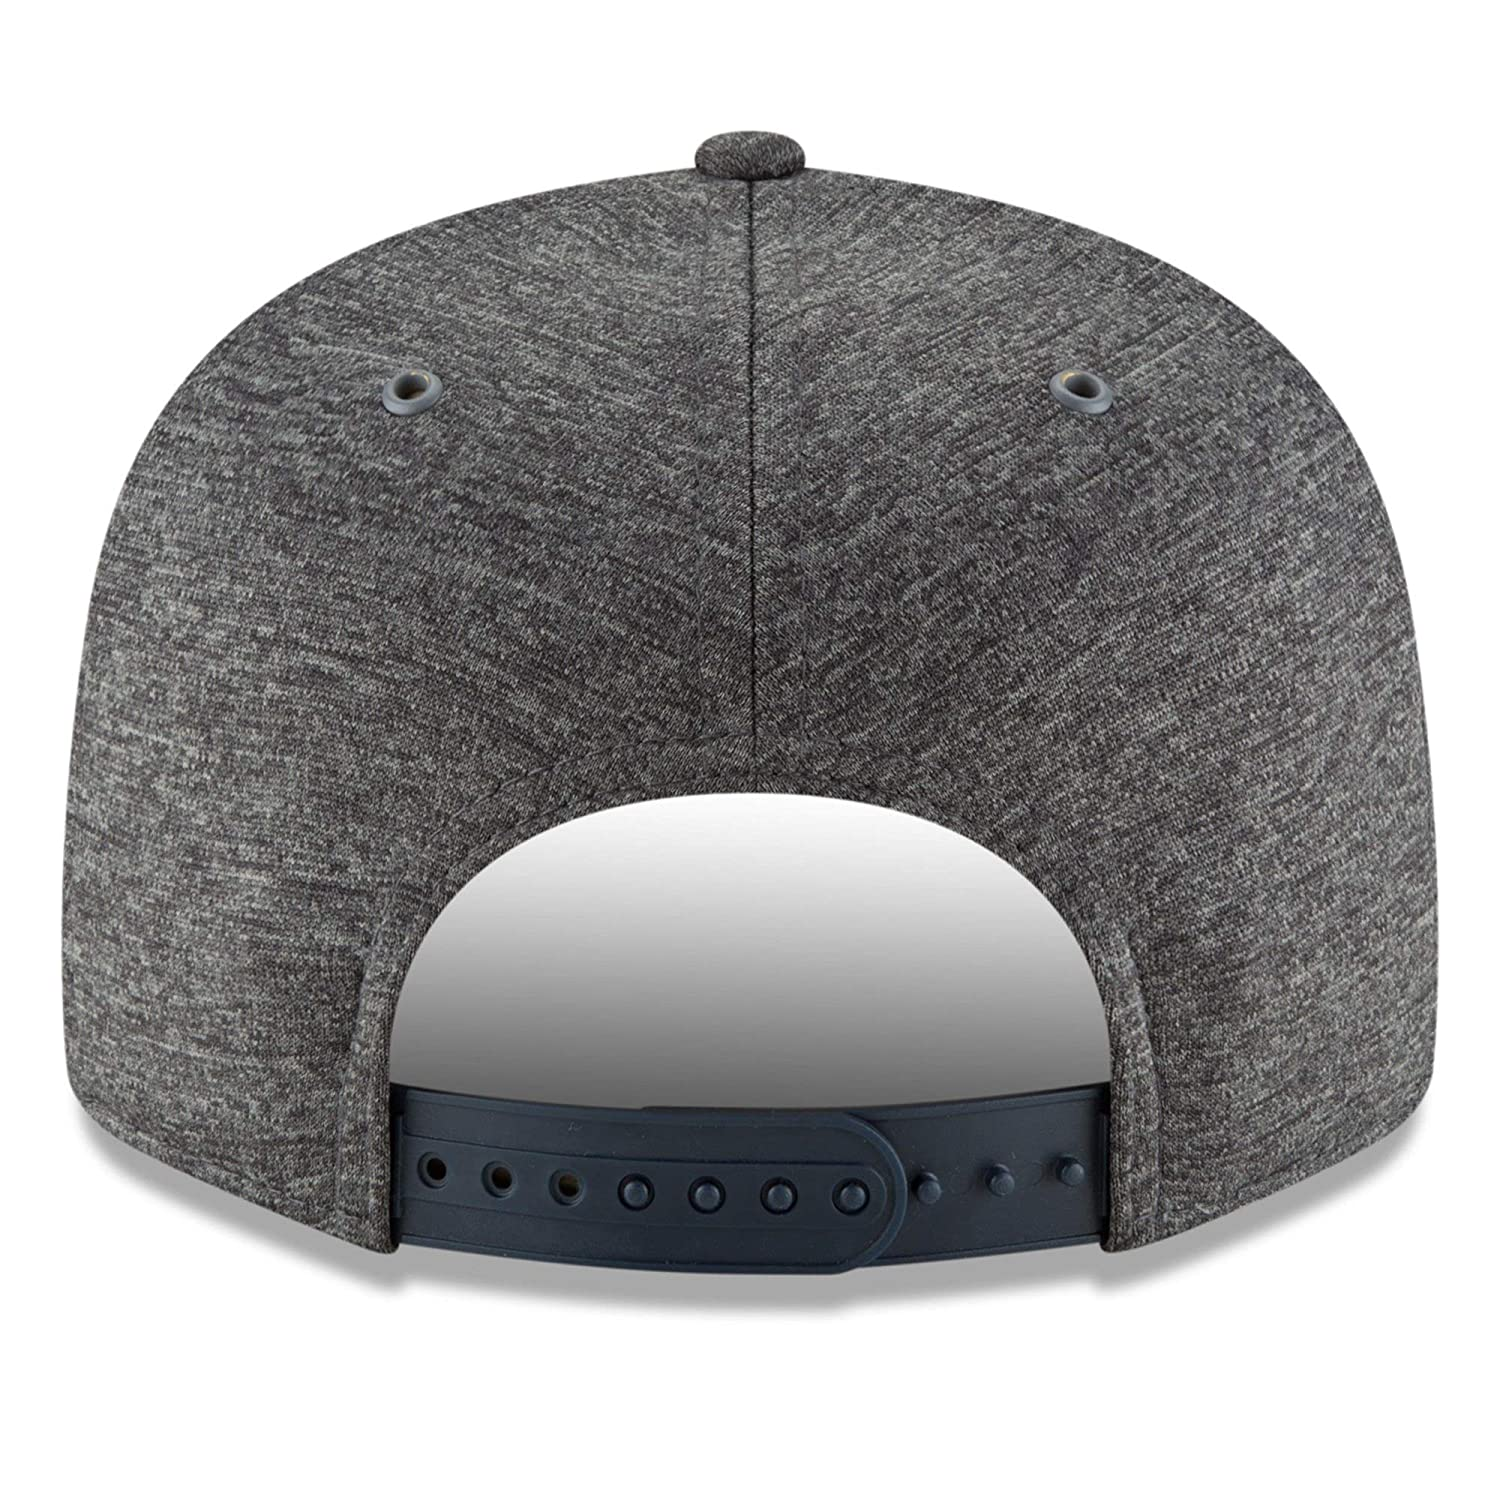 reputable site f1518 aa6a6 Amazon.com   New Era Dallas Cowboys 2018 Sideline Onfield NFL Graphite  Charcoal Navy 9Fifty Snapback Adjustable Hat, OSFM   Sports   Outdoors